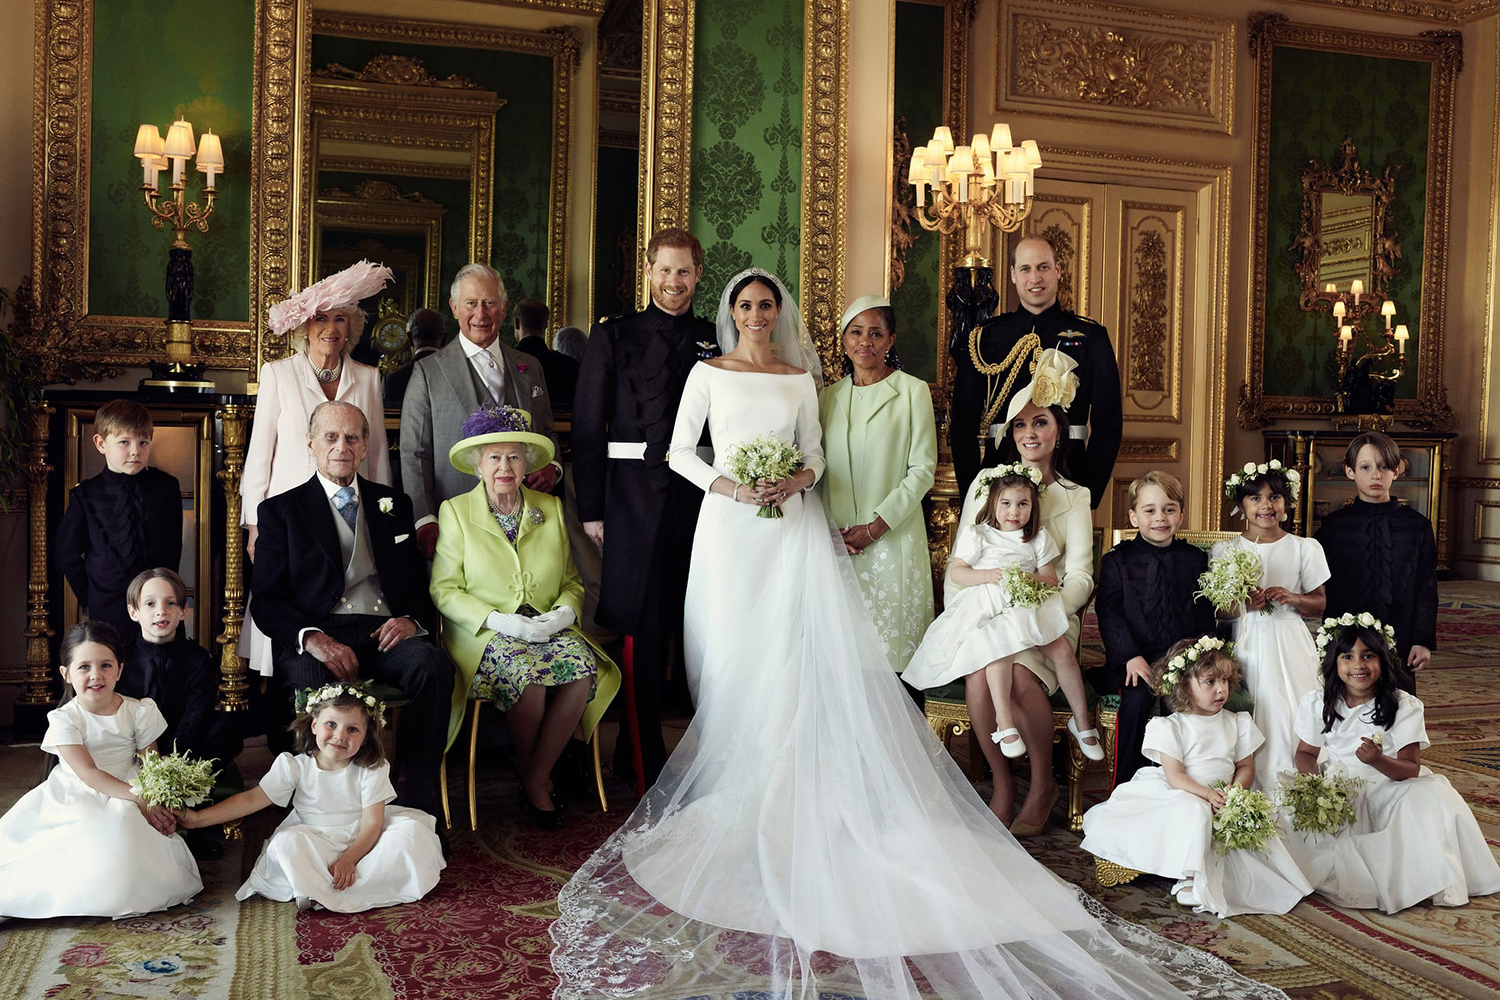 Prince Harry and Meghan Markle – the newly minted Duke and Duchess of Sussex – with their family, bridesmaids and pageboys after the wedding.